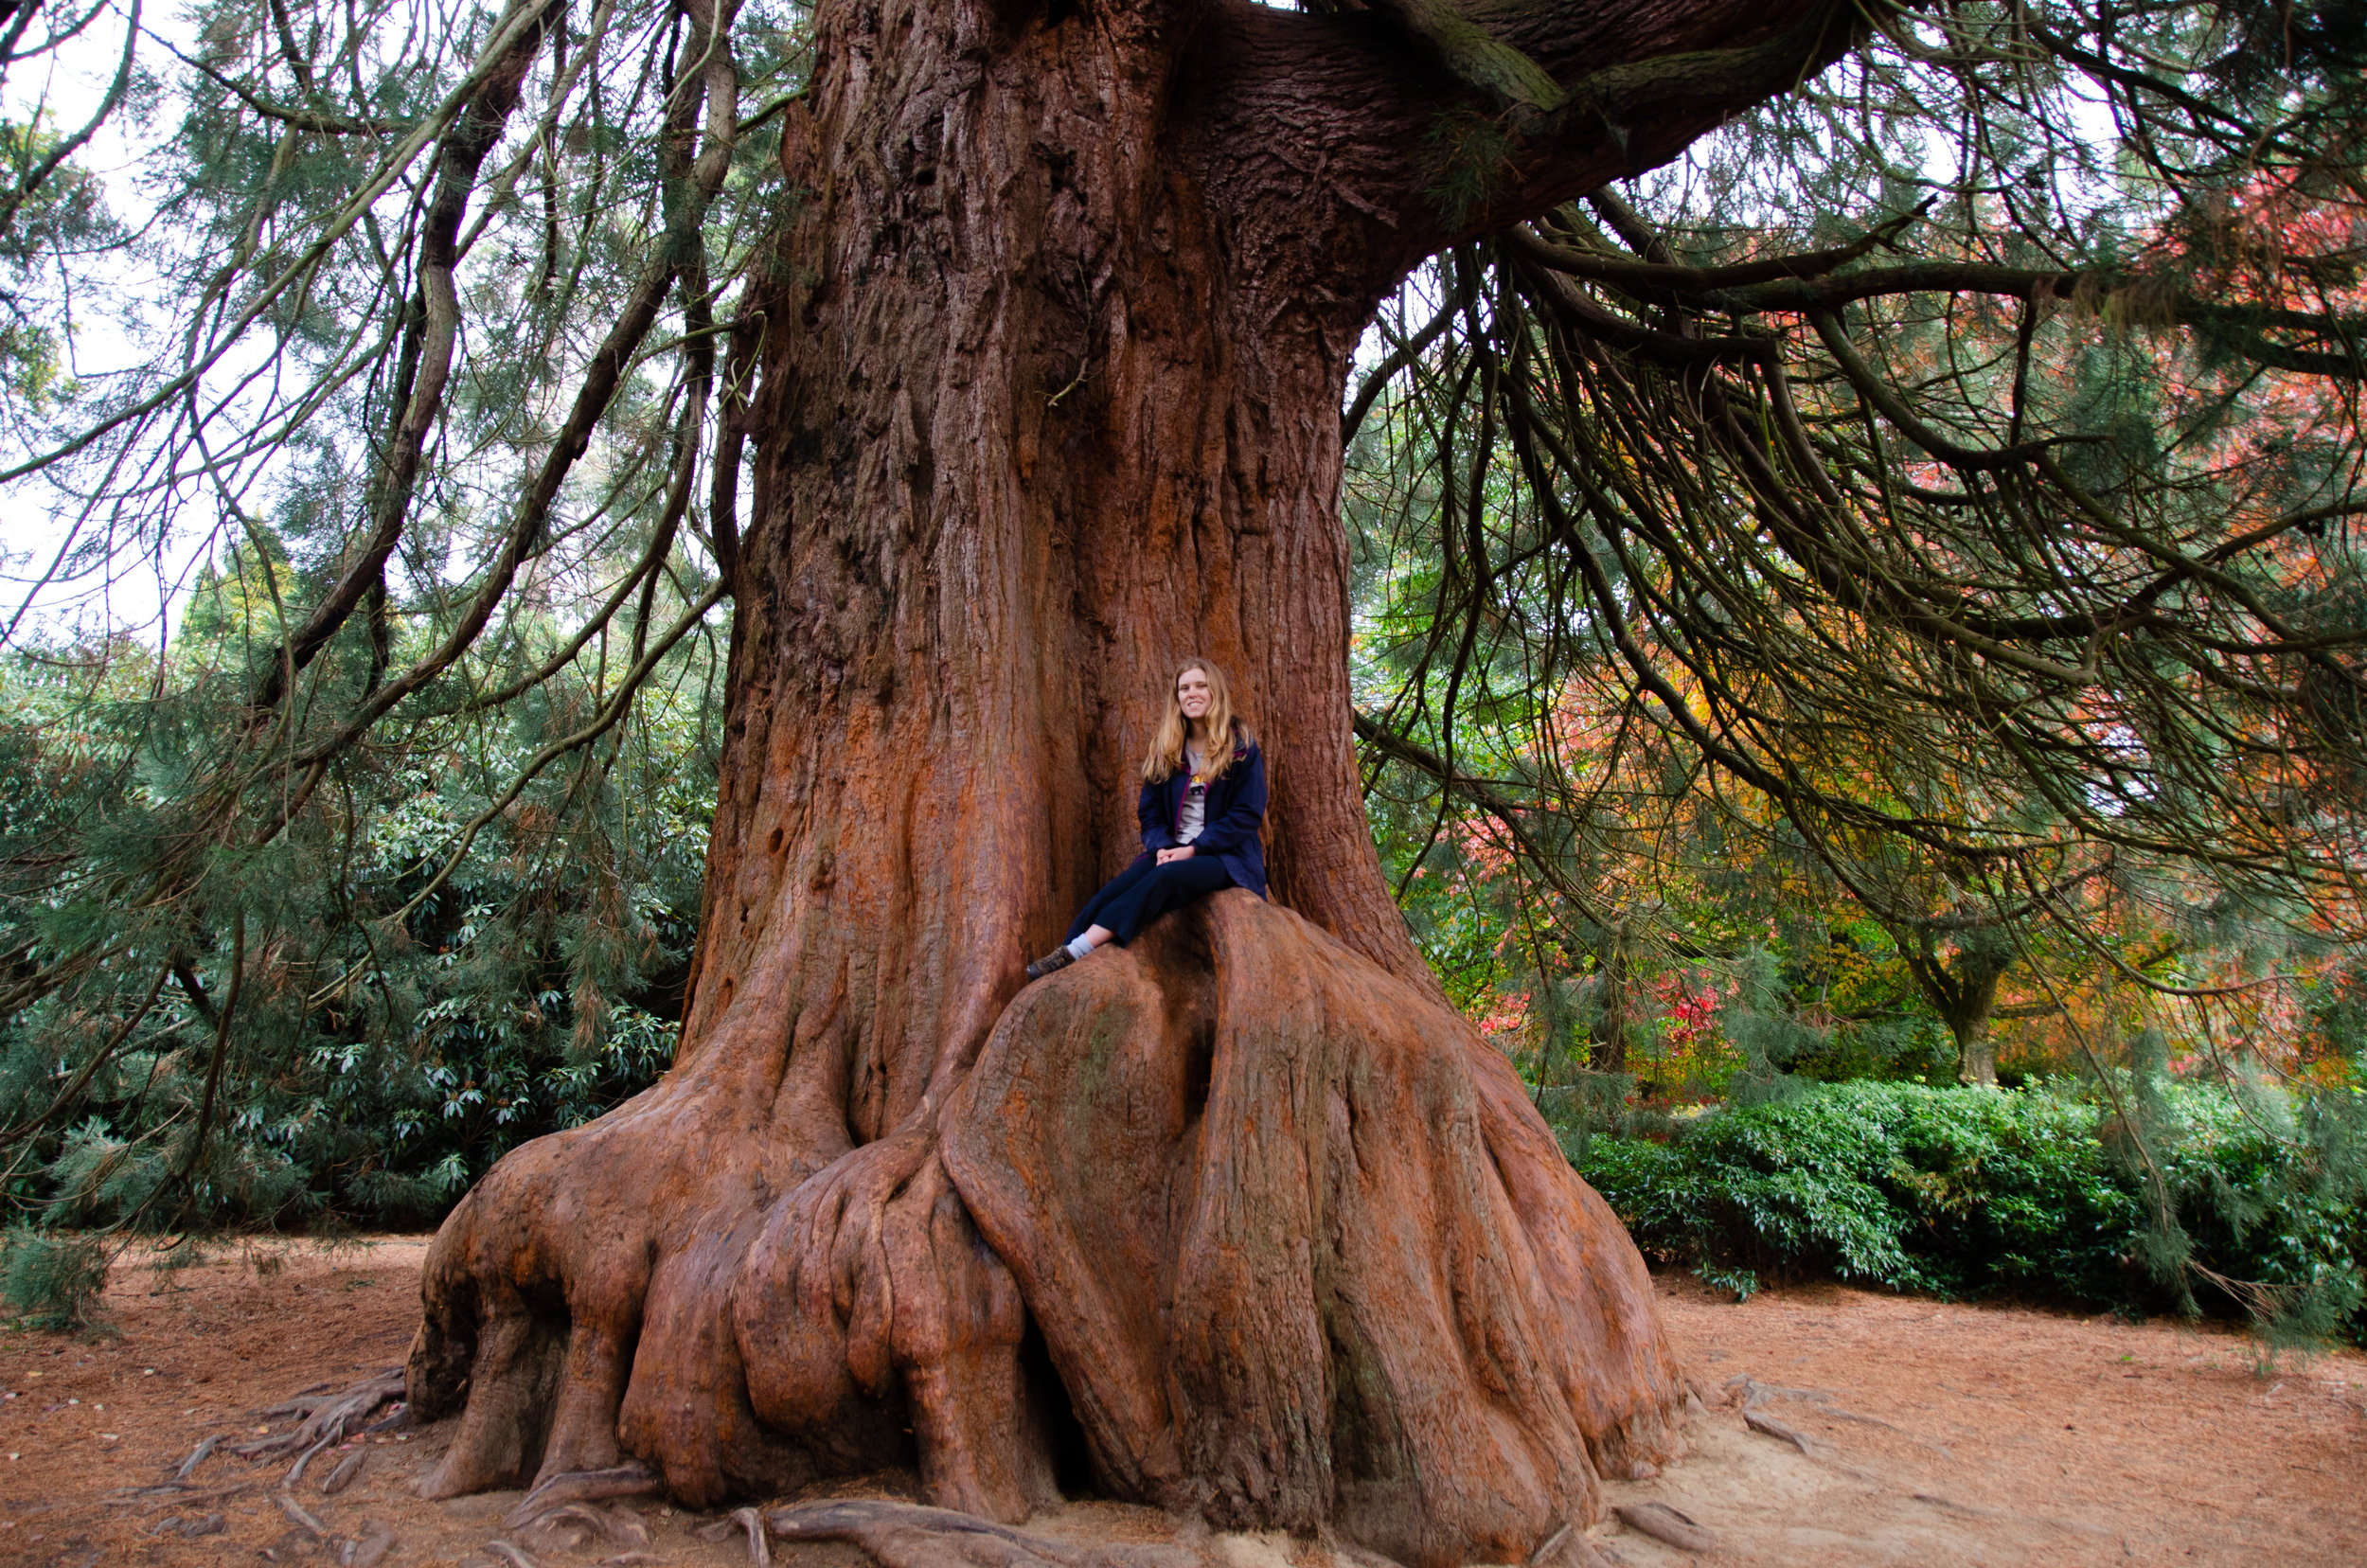 Climbing one of the park's magnificent Red-wood trees- this one is only 80 years old and is already huge!